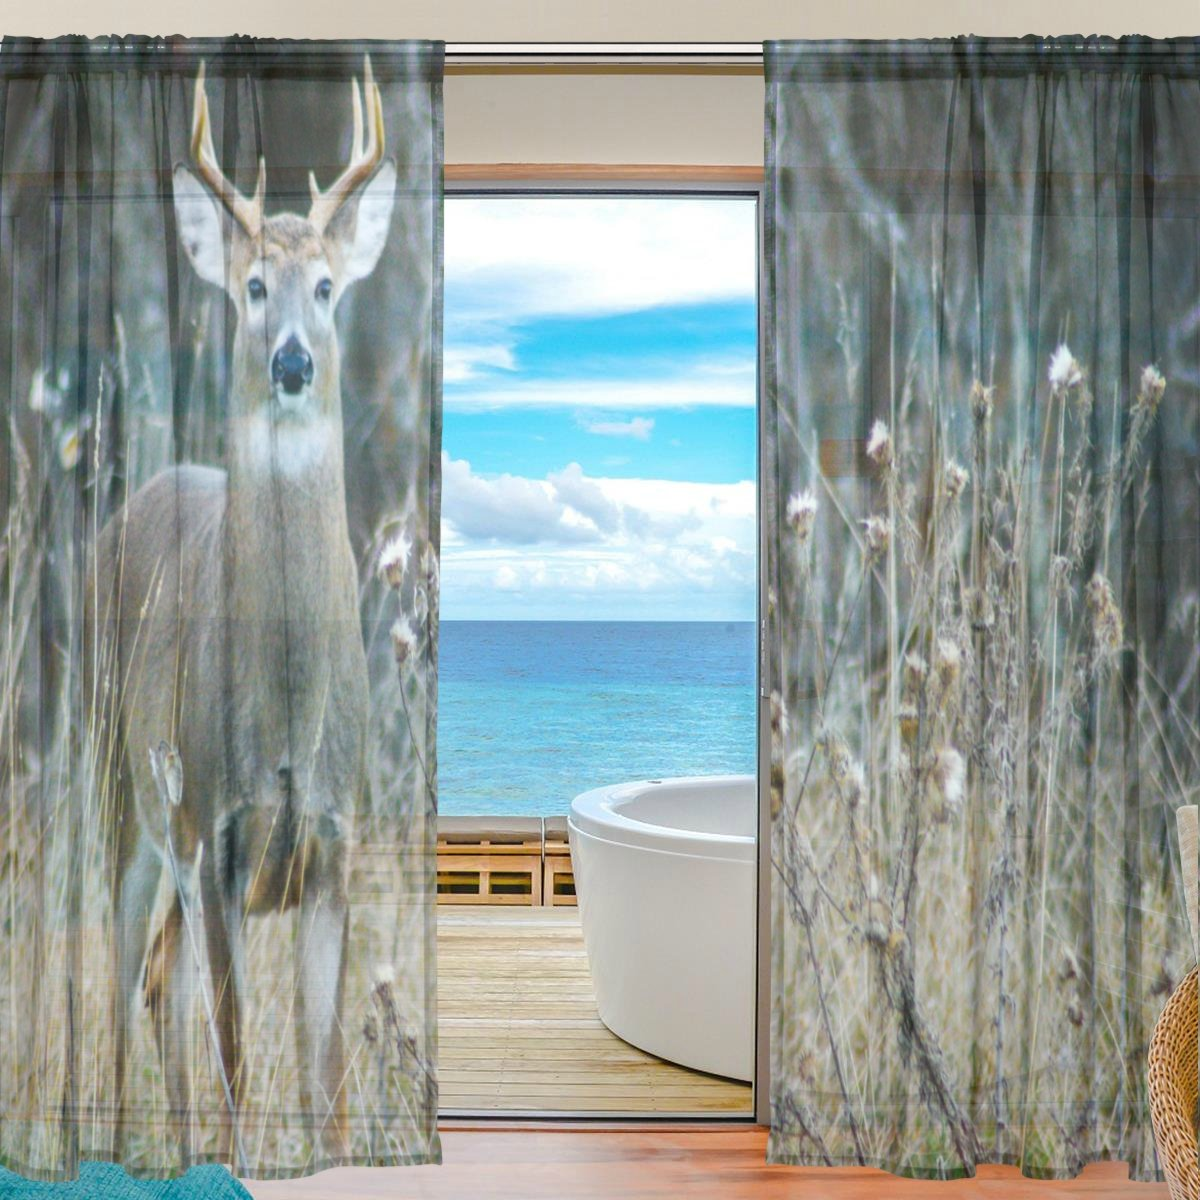 SEULIFE Window Sheer Curtain, Wild Animal Deer Antler Voile Curtain Drapes for Door Kitchen Living Room Bedroom 55x78 inches 2 Panels g3828907p113c127s169